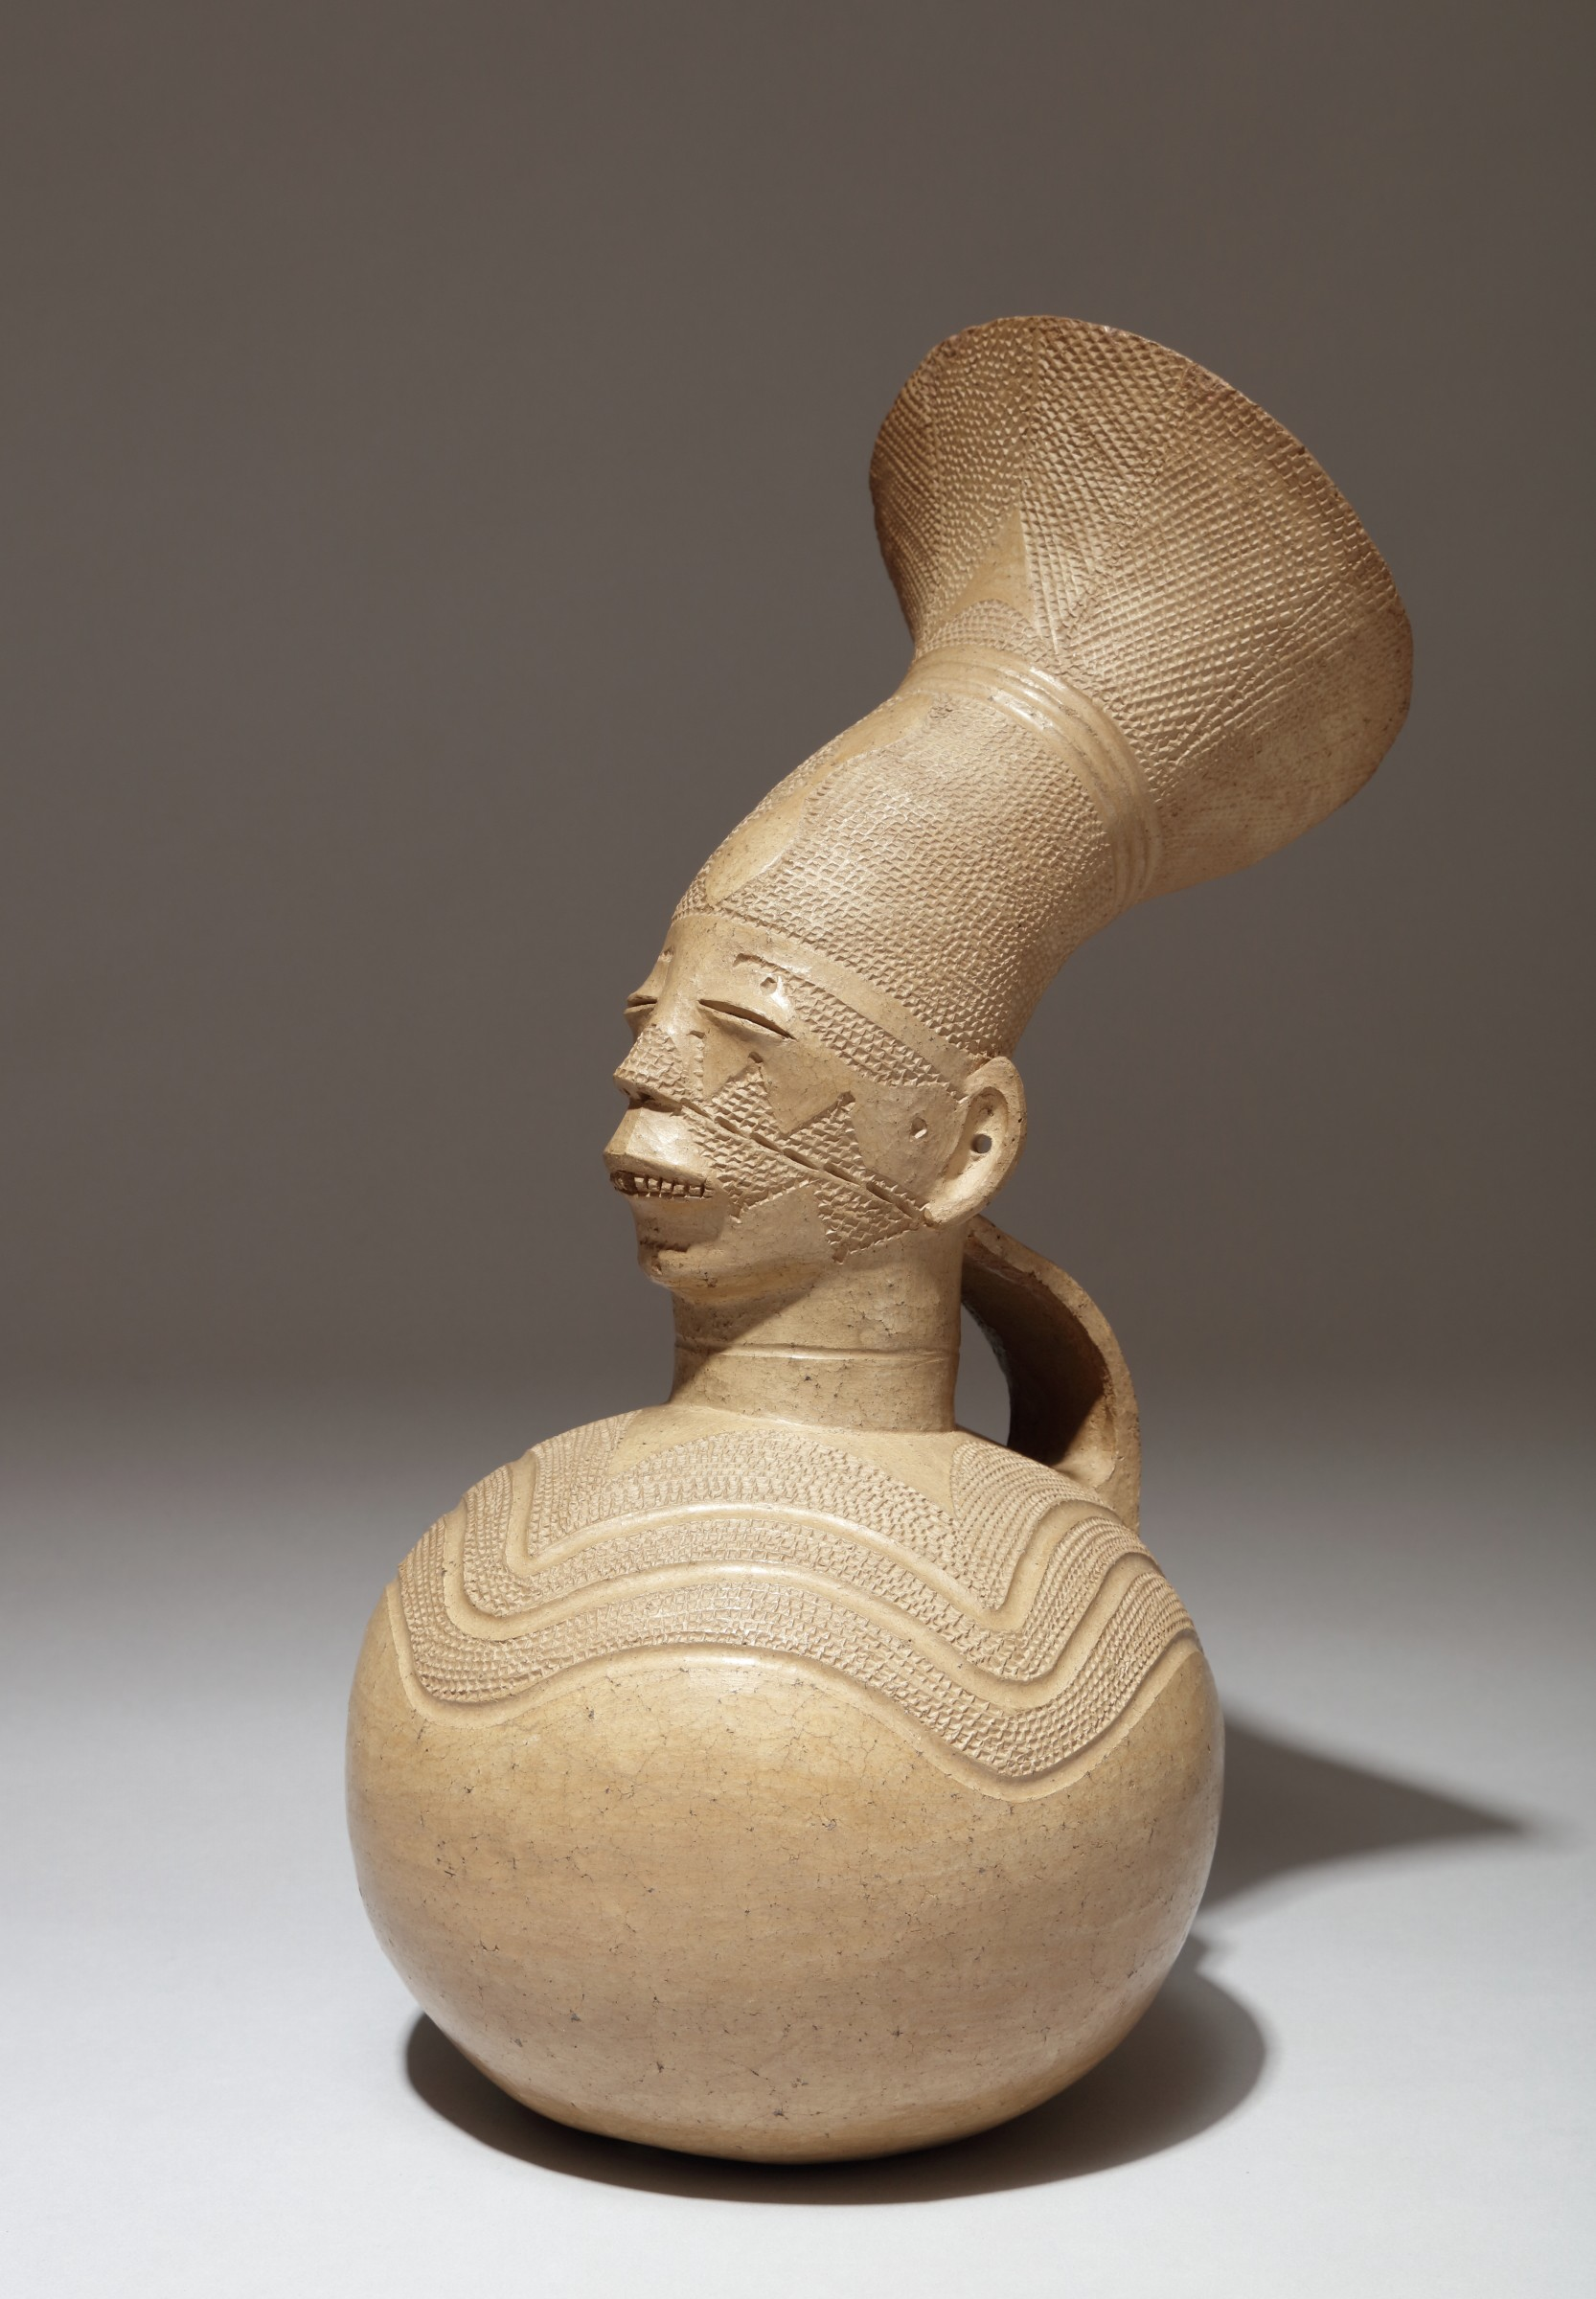 Terra-cotta vessel featuring a bust of a woman wearing a traditional, sculptural Mangbetu hairstyle known as a tumburu.